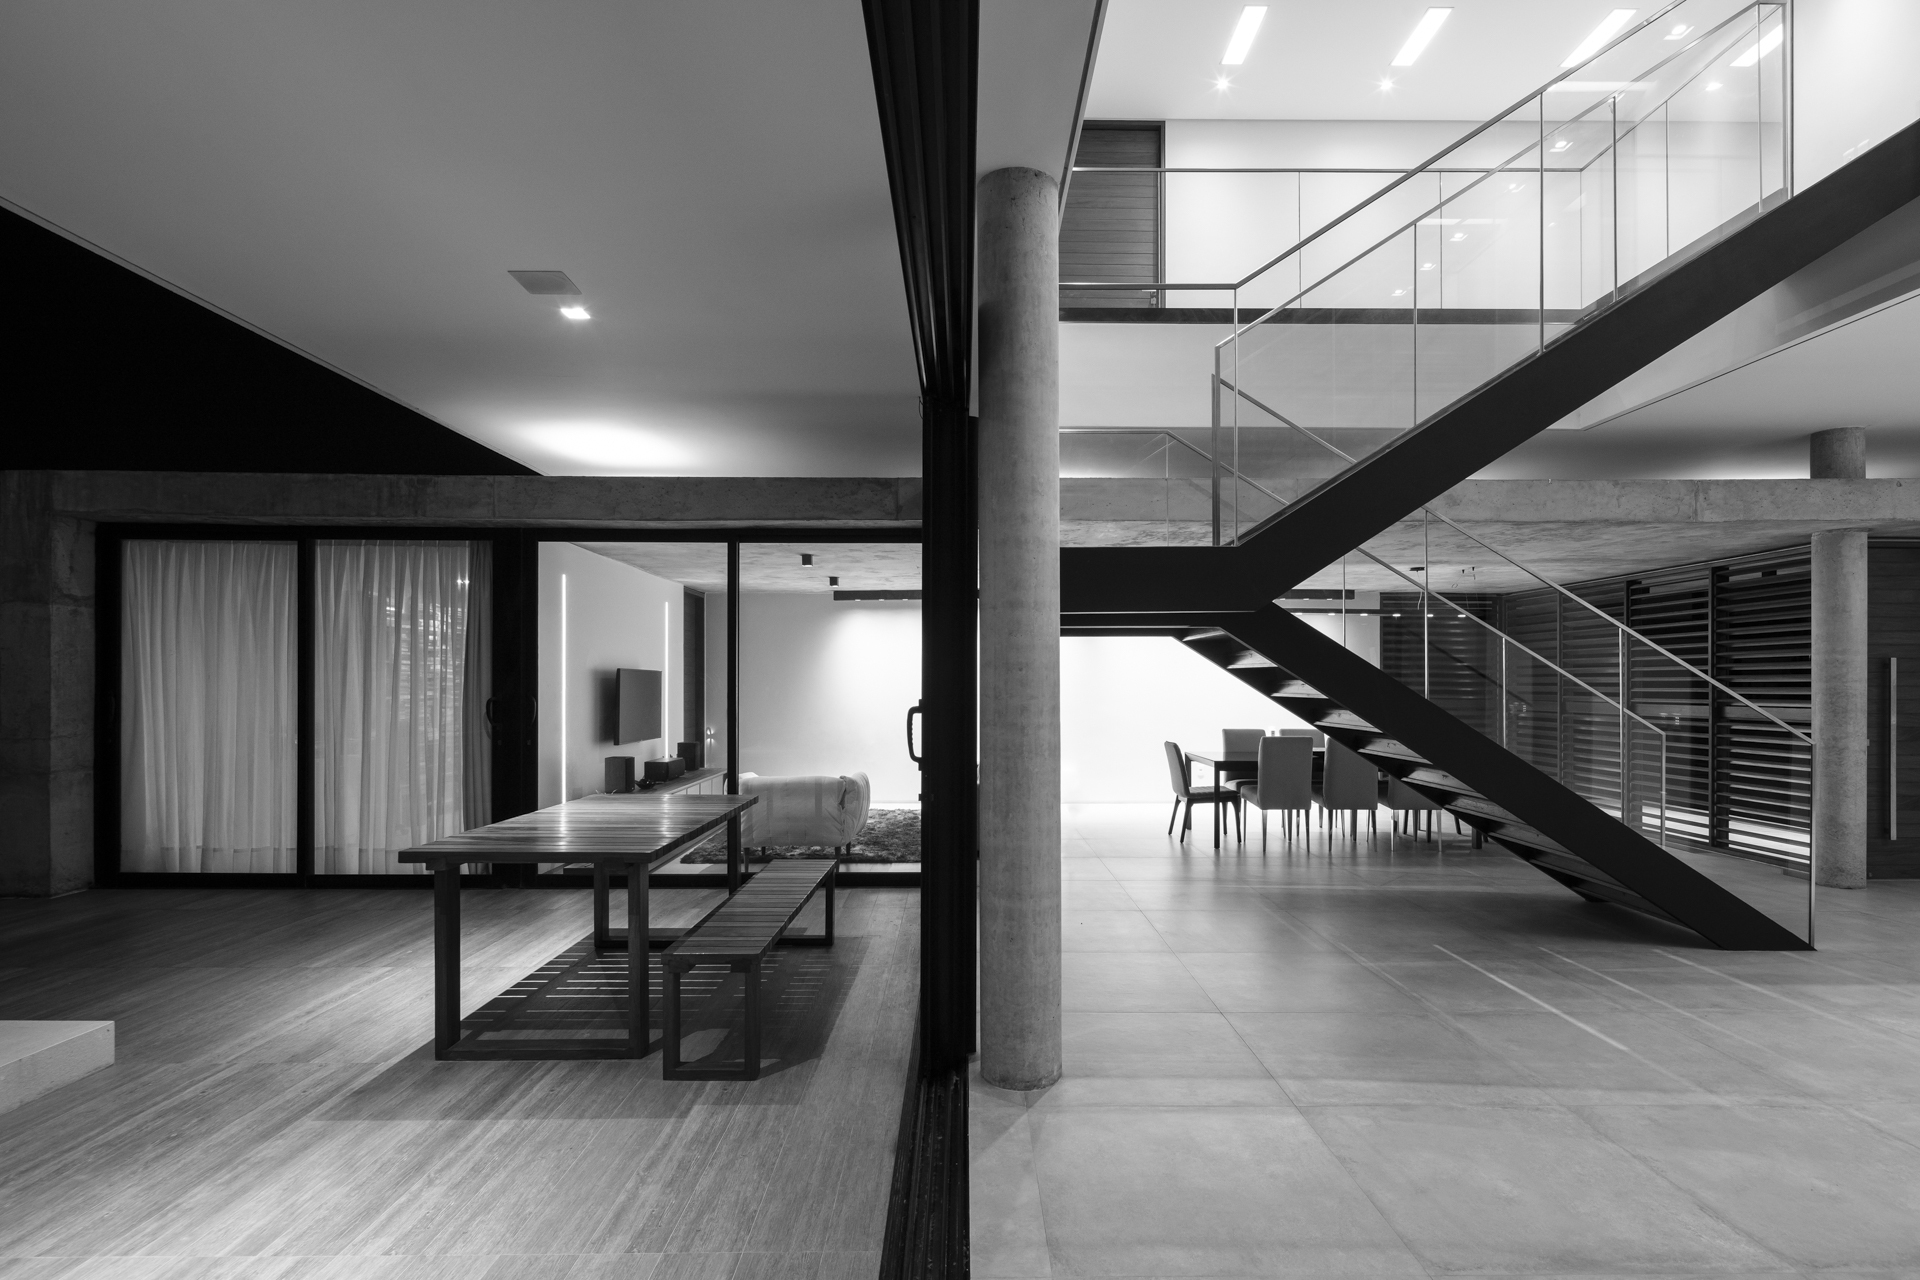 21_CASA_IF_-_Martins_Lucena_Arquitetos-25.jpg